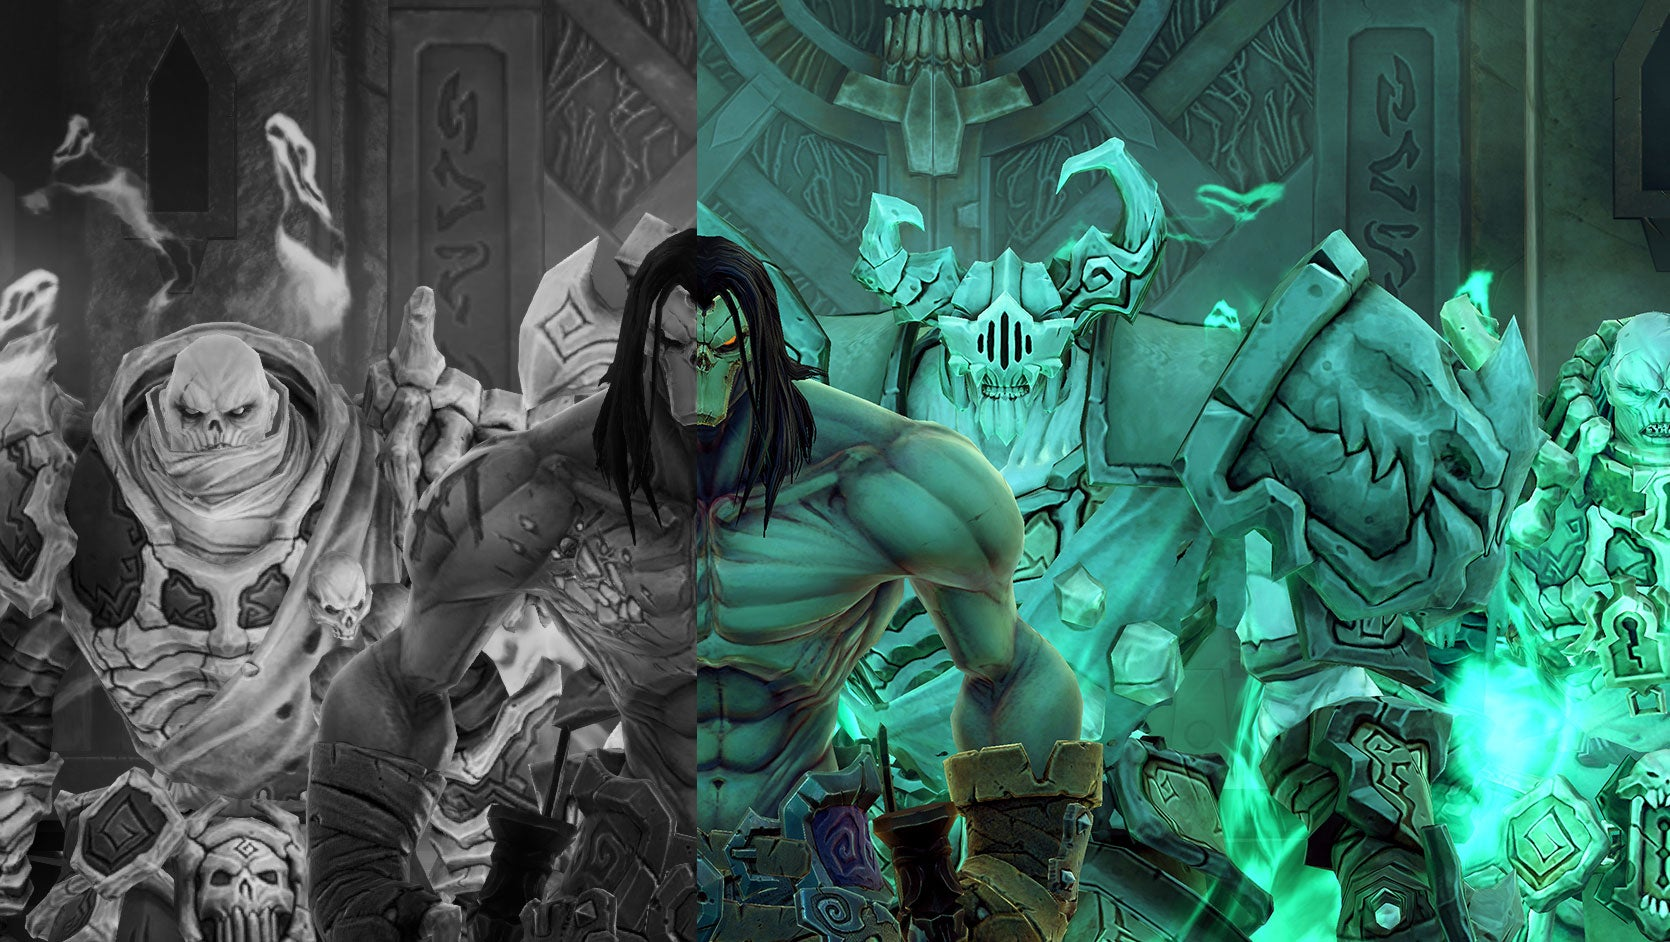 Let's Compare Old Darksiders 2 To The 'Deathinitive' Edition